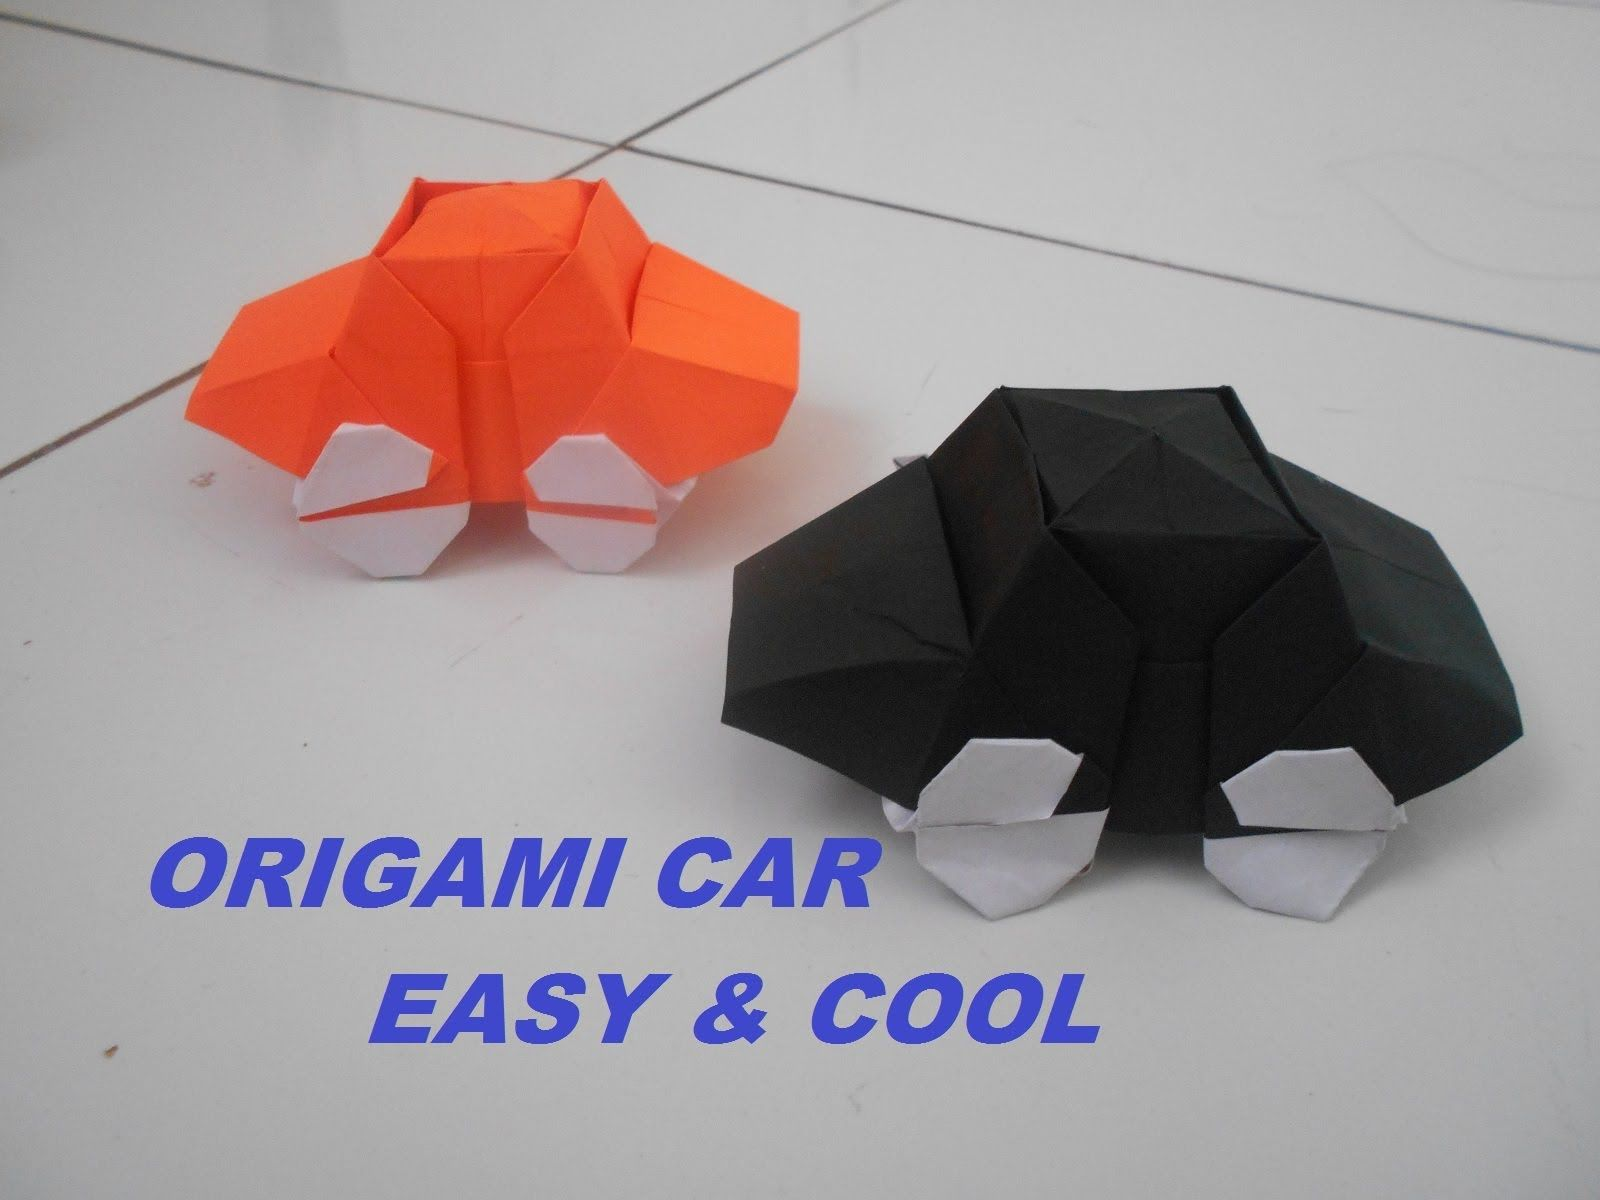 How to make an origami paper car making paper art cj how to make an origami paper car making paper art jeuxipadfo Image collections